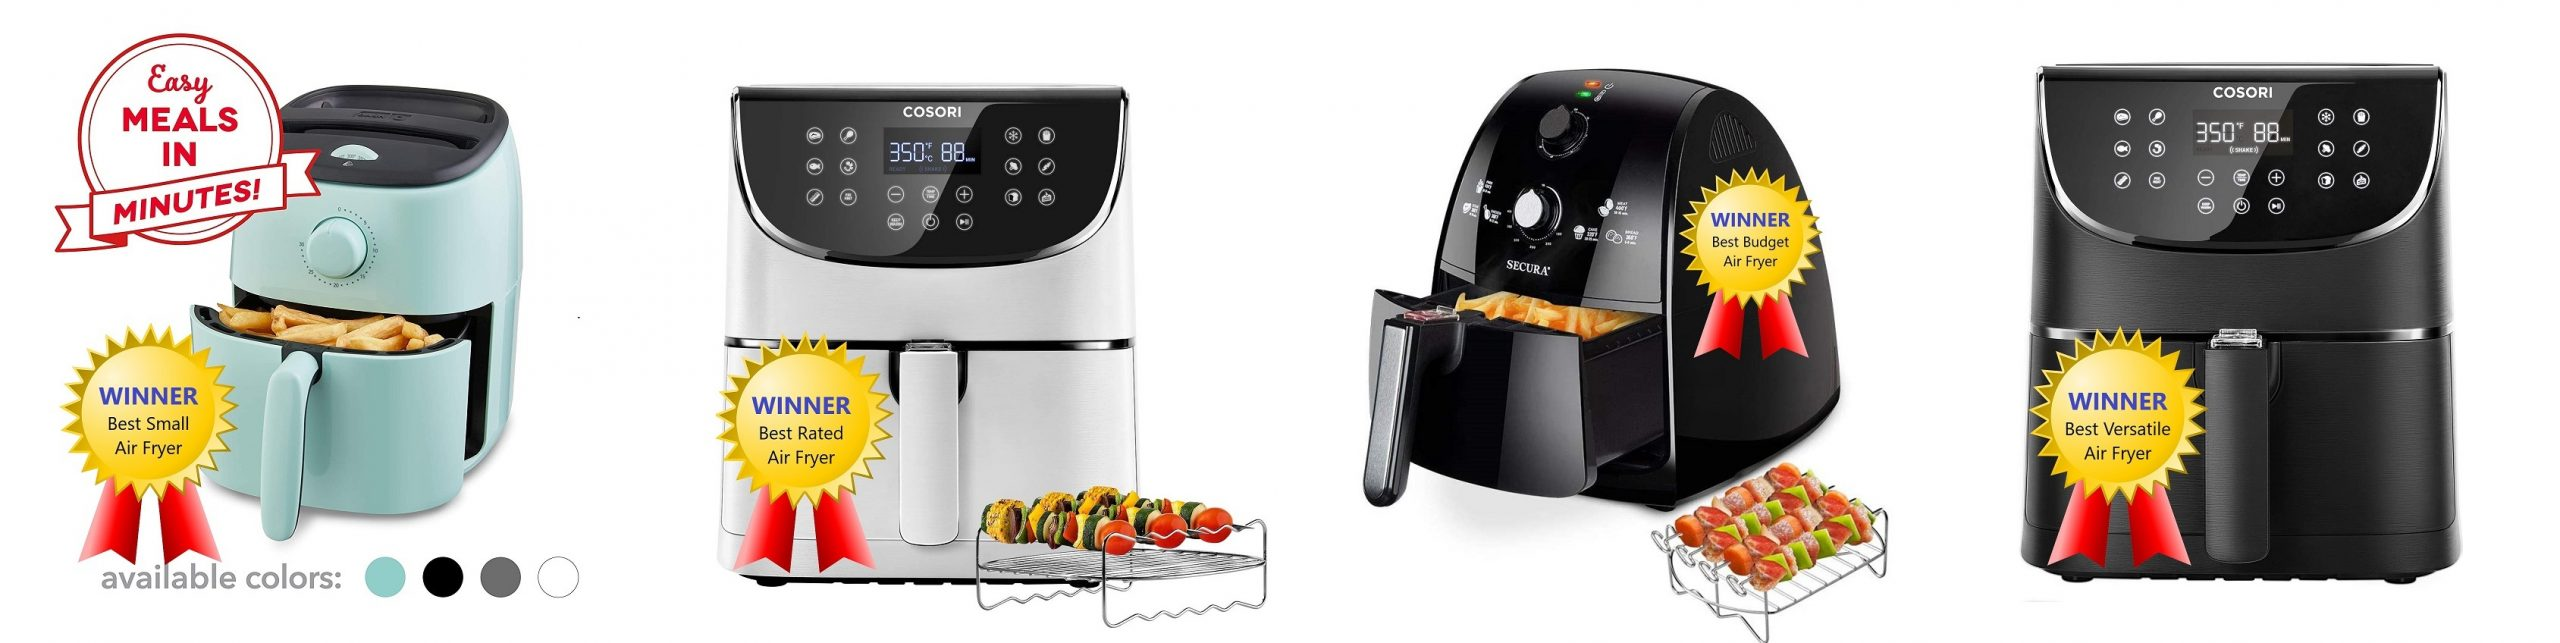 Best buy air fryer